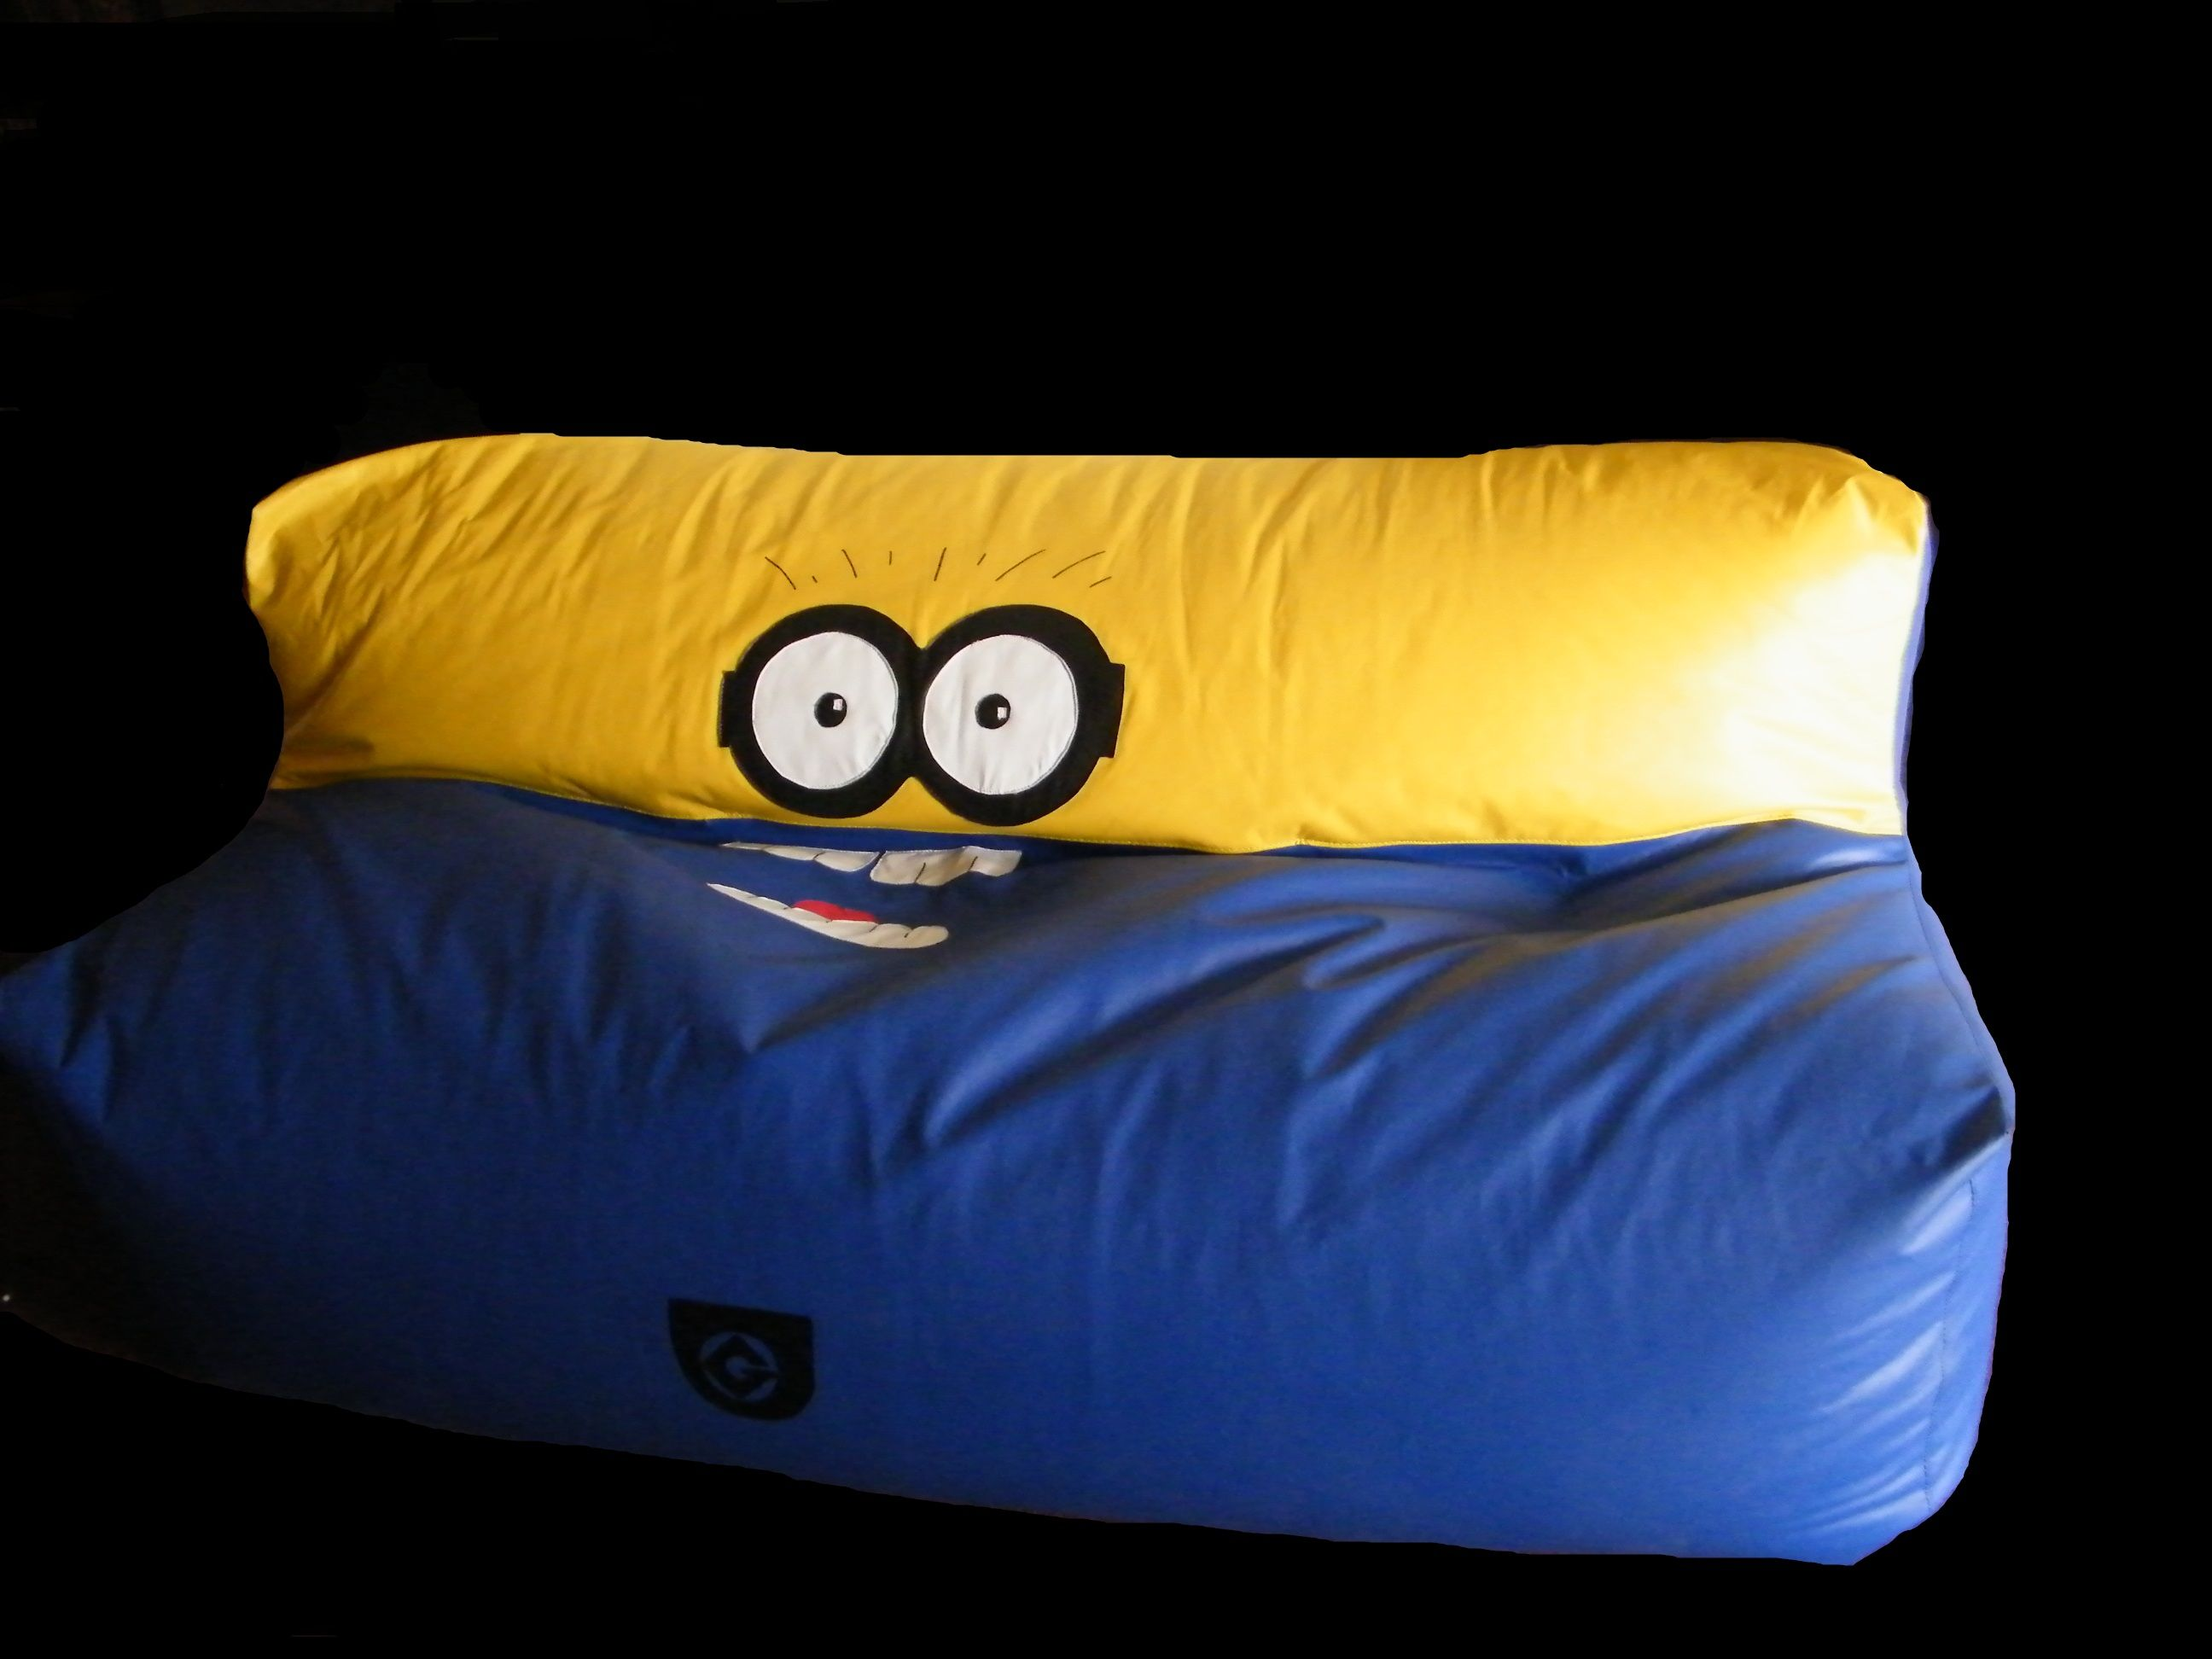 sillon puff minion, mi villano favorito